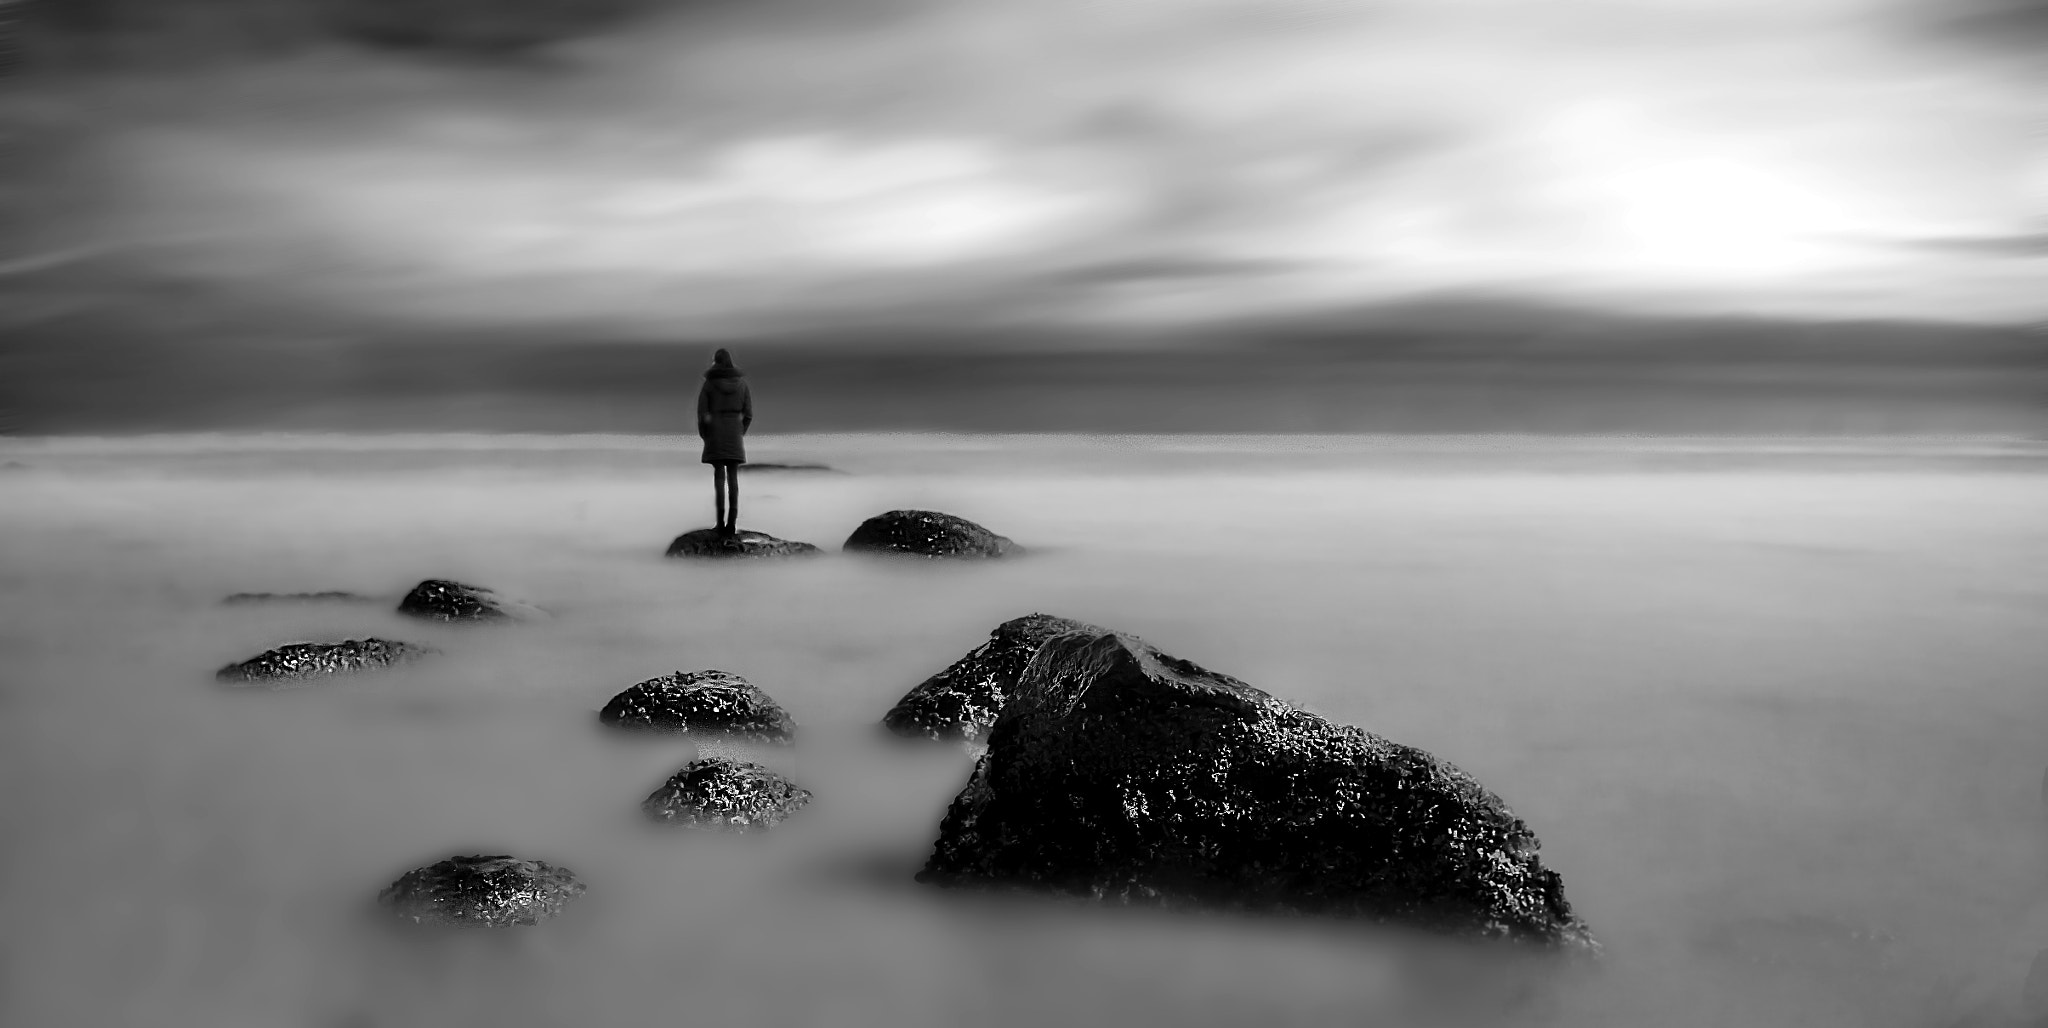 Photograph Moody Girl by Peter Emil Andersen on 500px